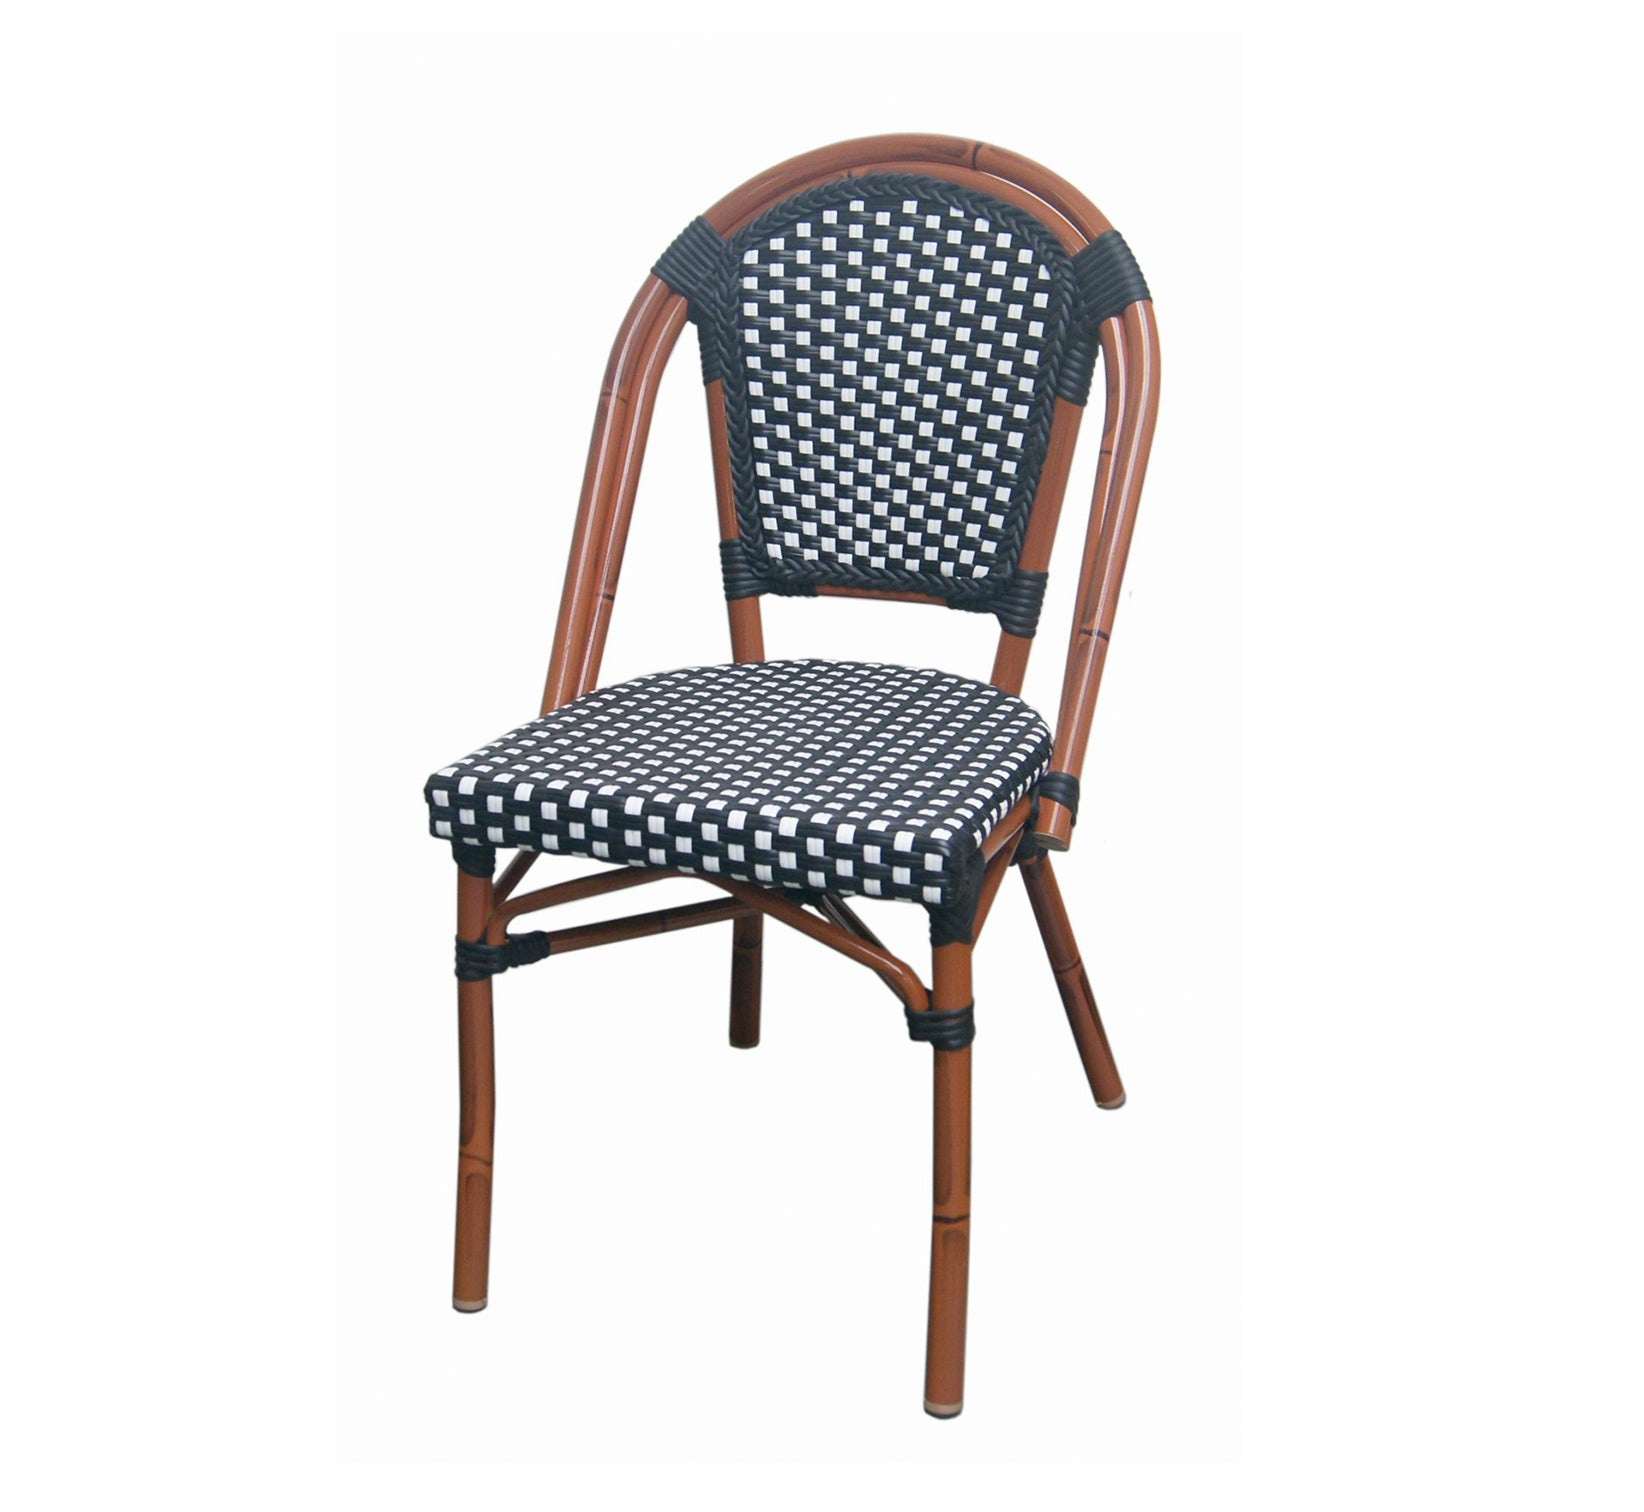 Restaurant Furniture MFG Chairs Tables Booths And Patio - Restaurant patio furniture